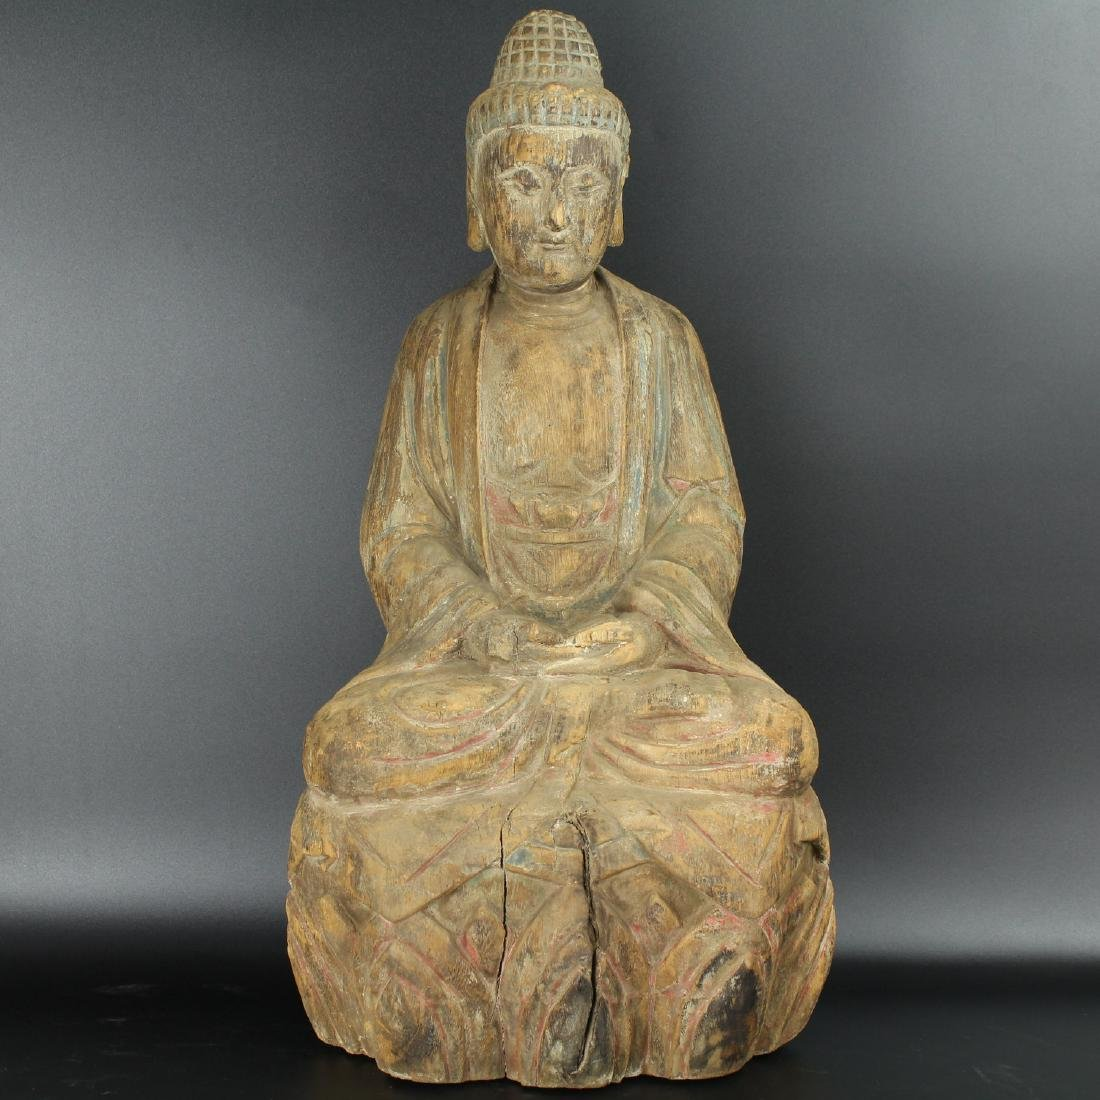 Chinese carved wood figure of a Buddha.